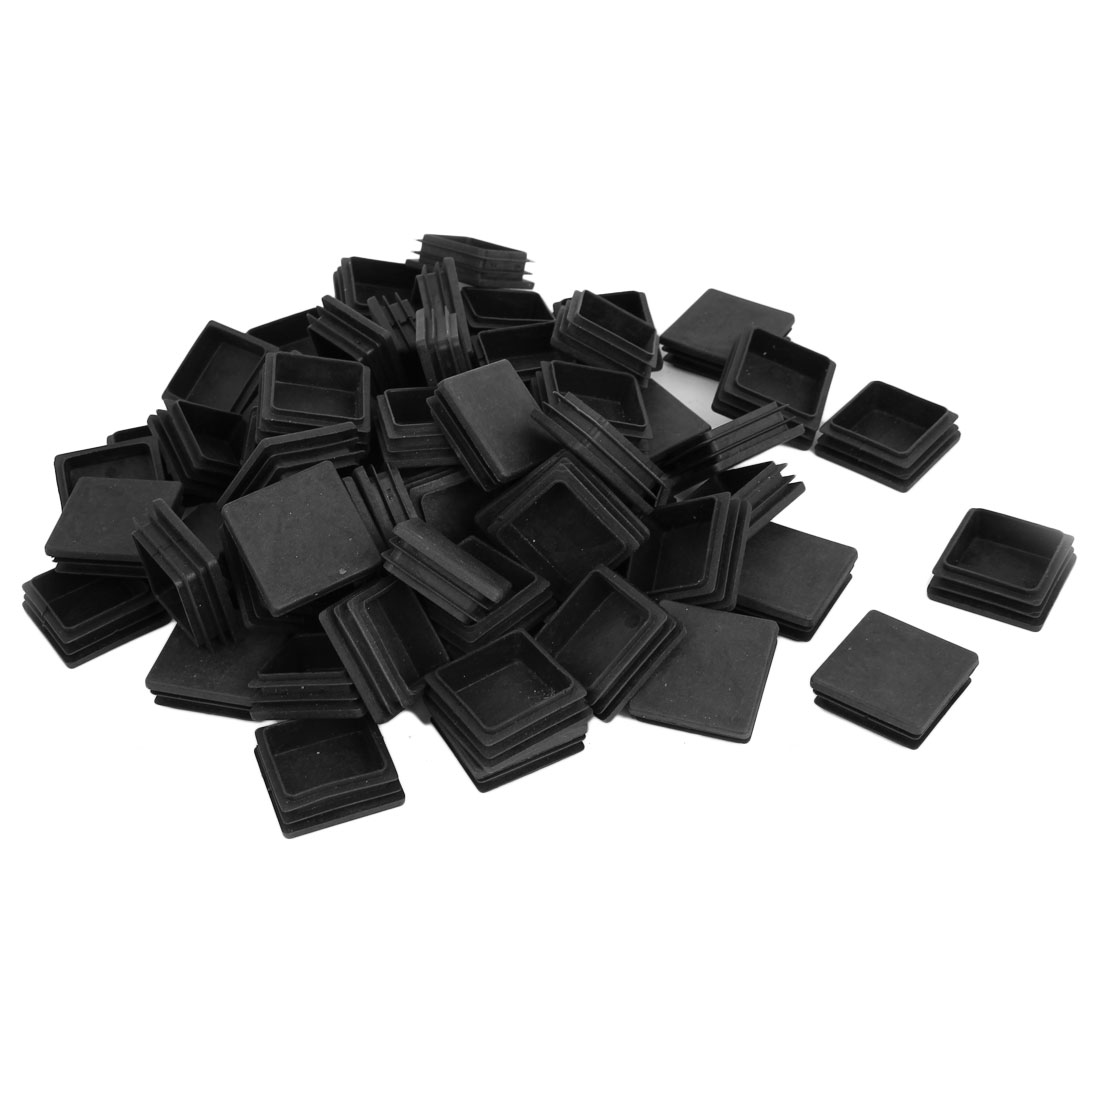 40mm x 40mm Plastic Square Blanking End Caps Tubing Tube Inserts 100 Pcs